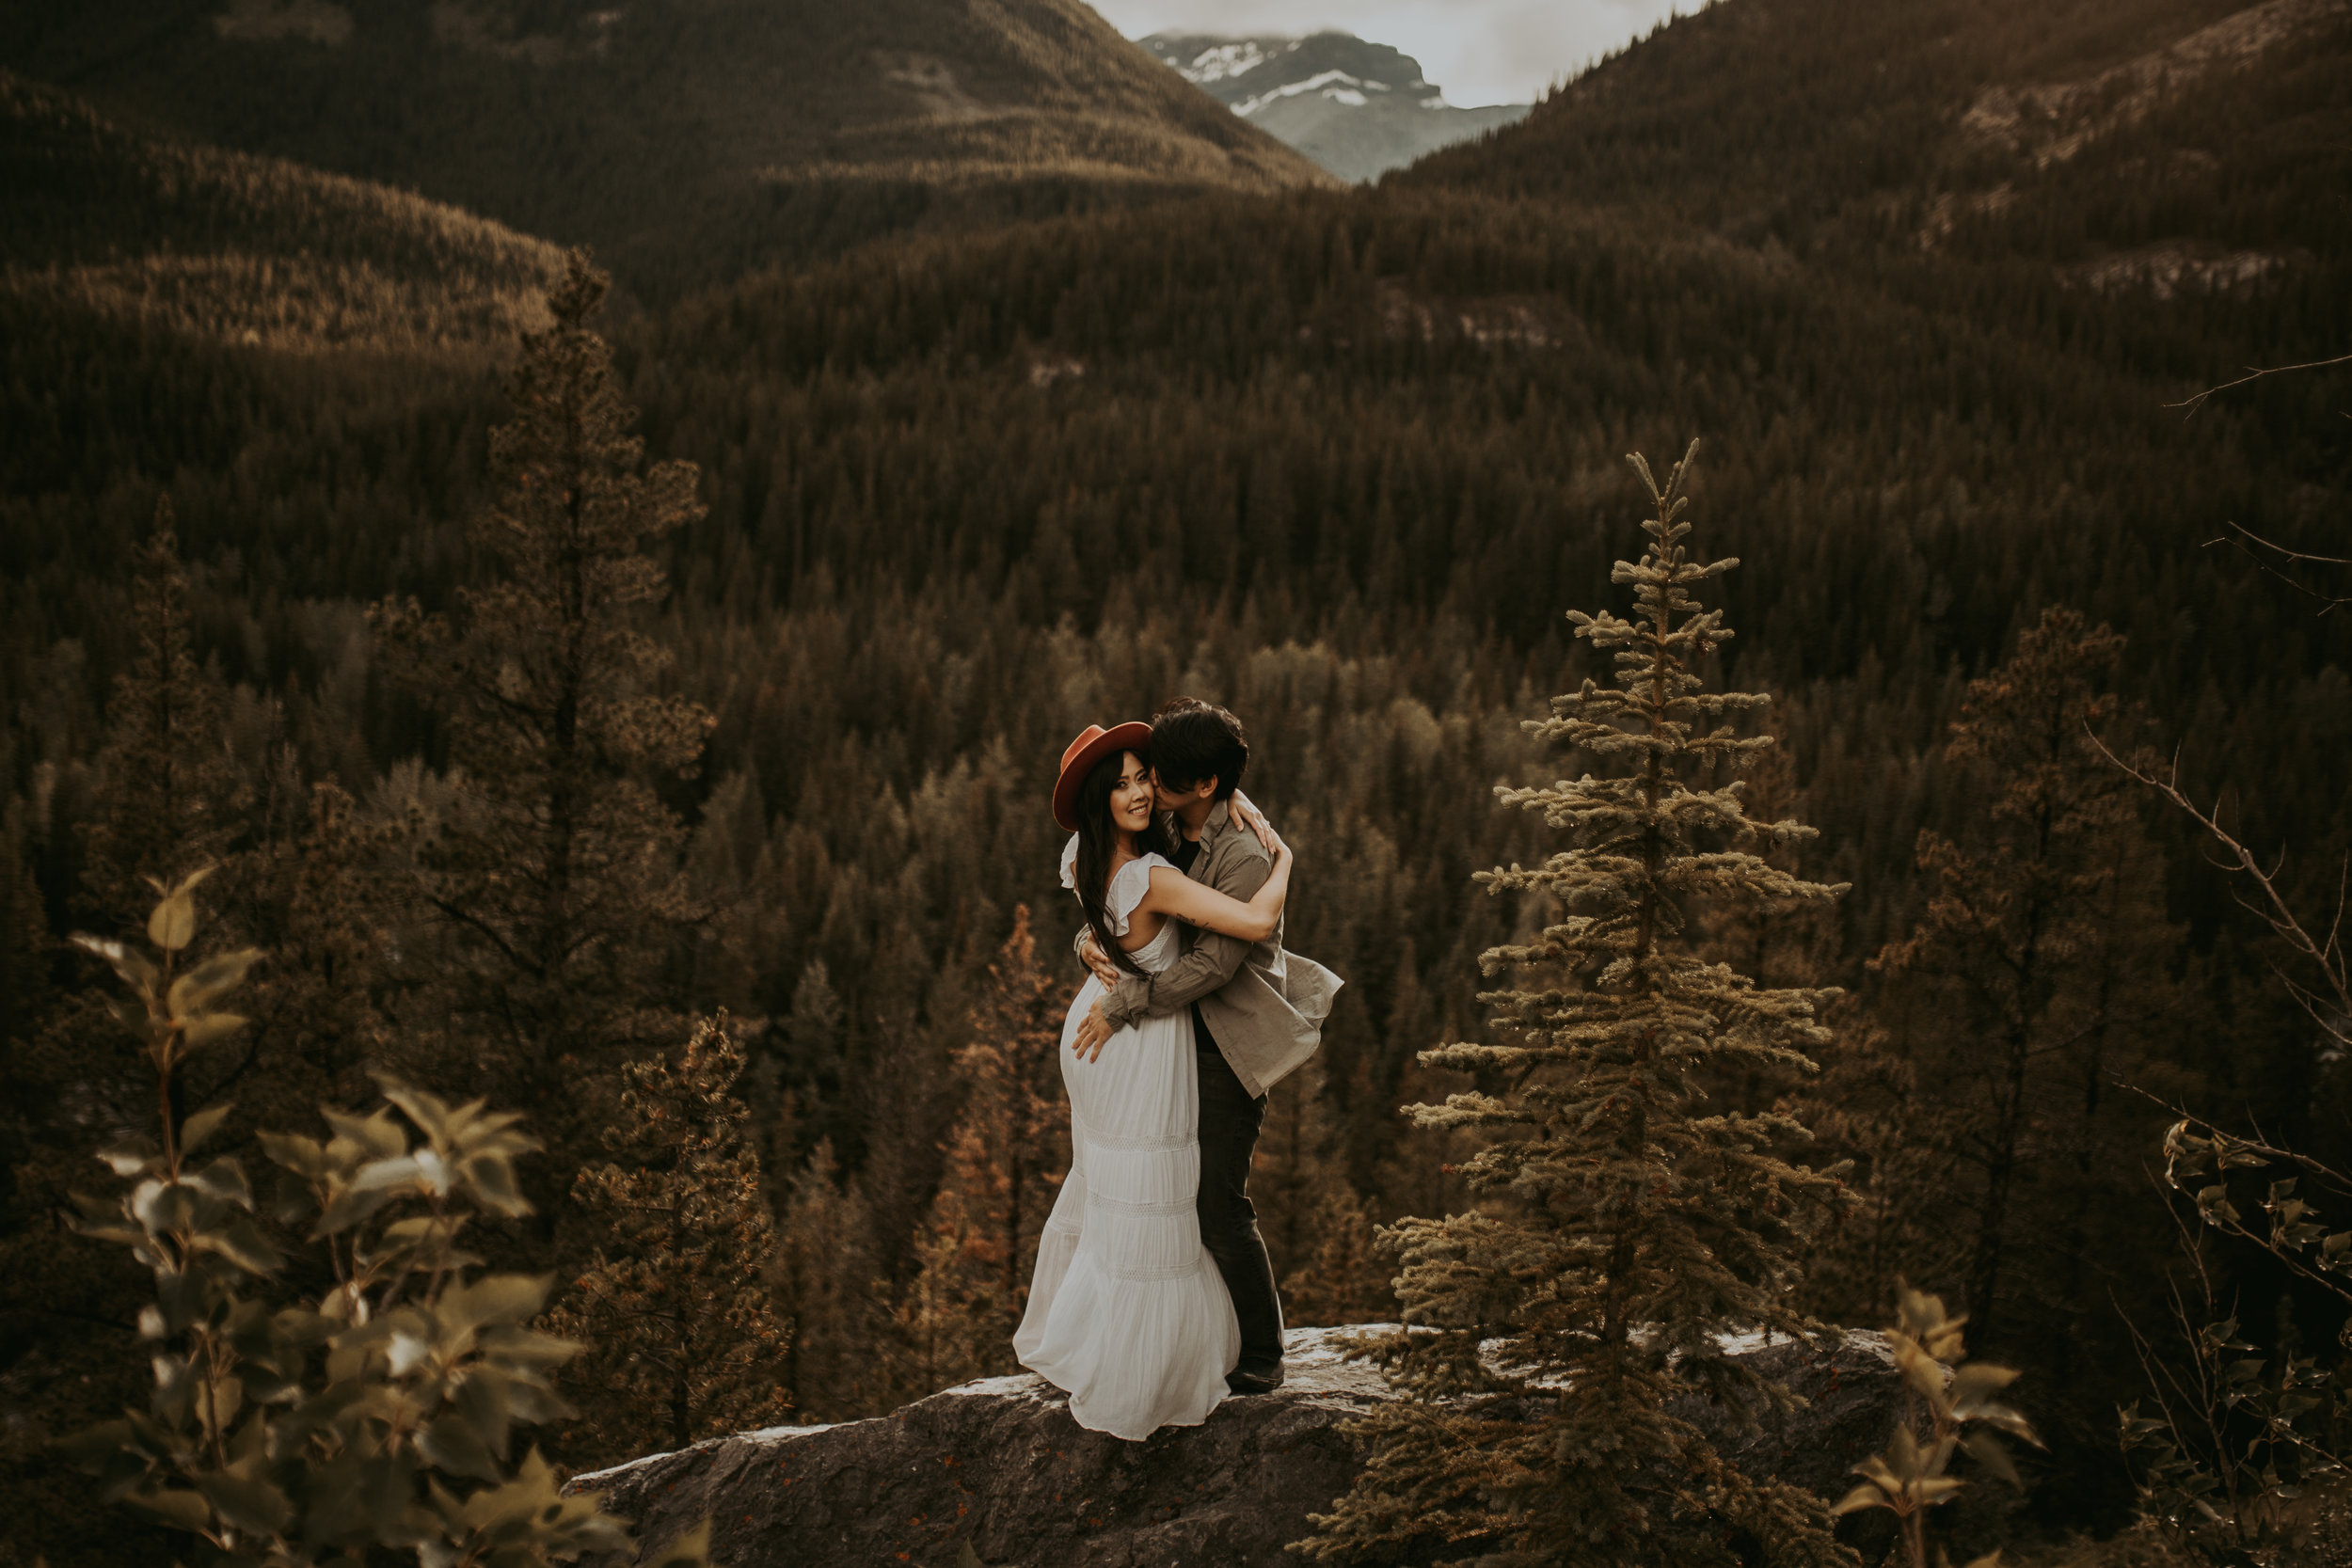 Banff Engagement session, Banff photographer, Banff elopement, Banff Photography, Italy Elopement